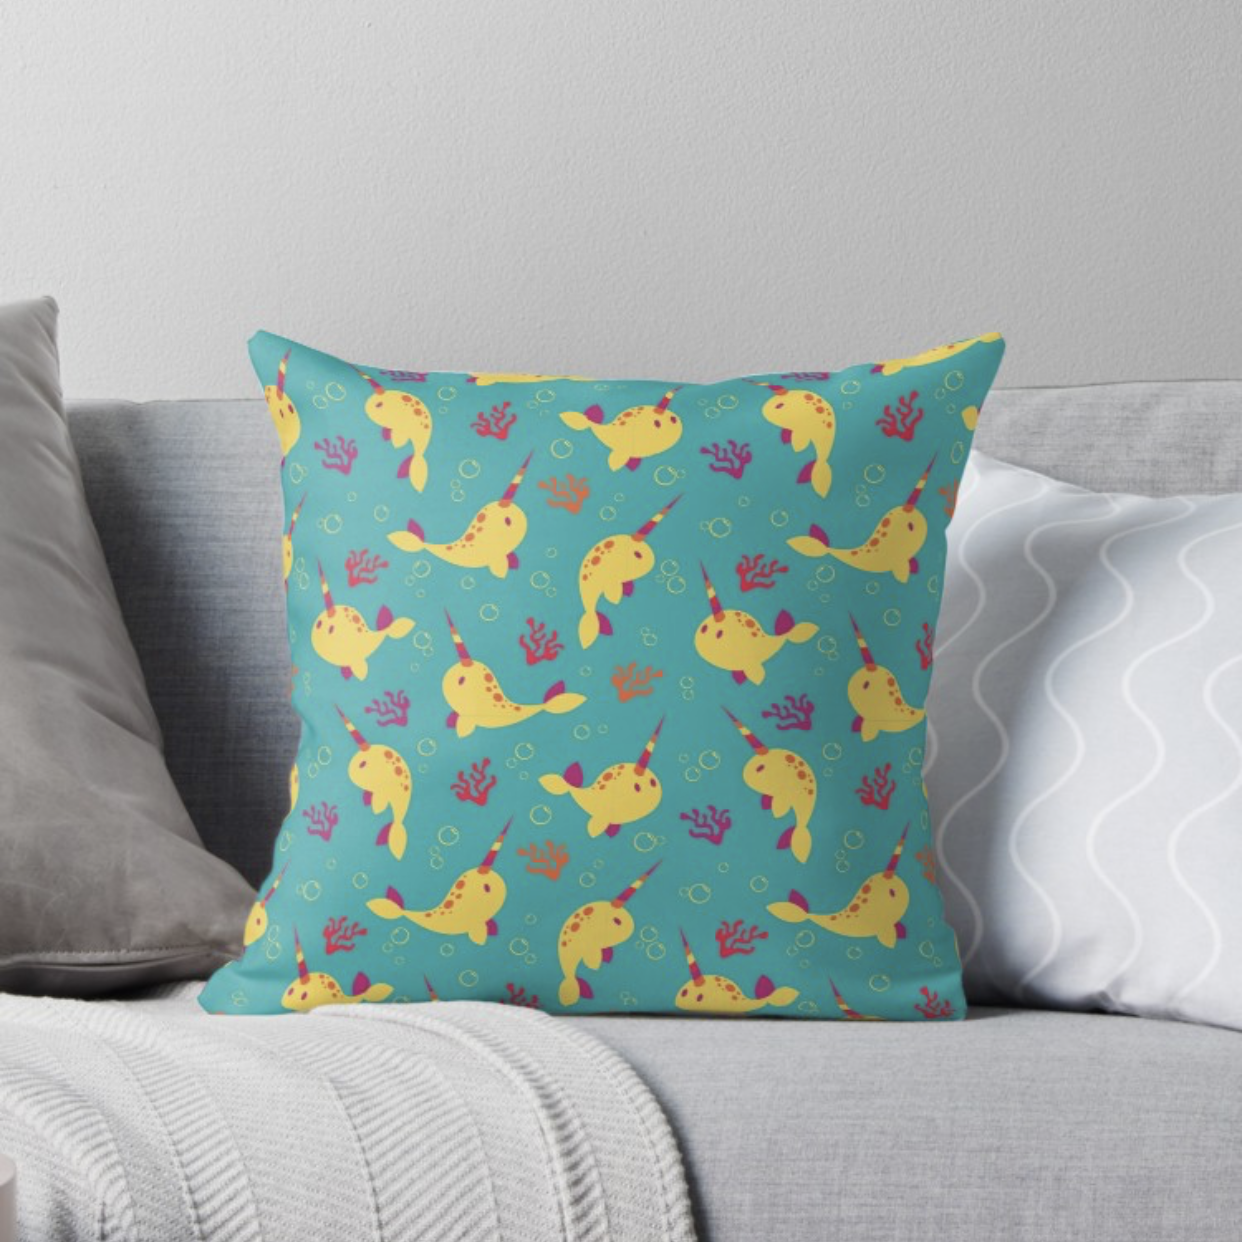 To the Window to the Narwhal throw pillow from Redbubble